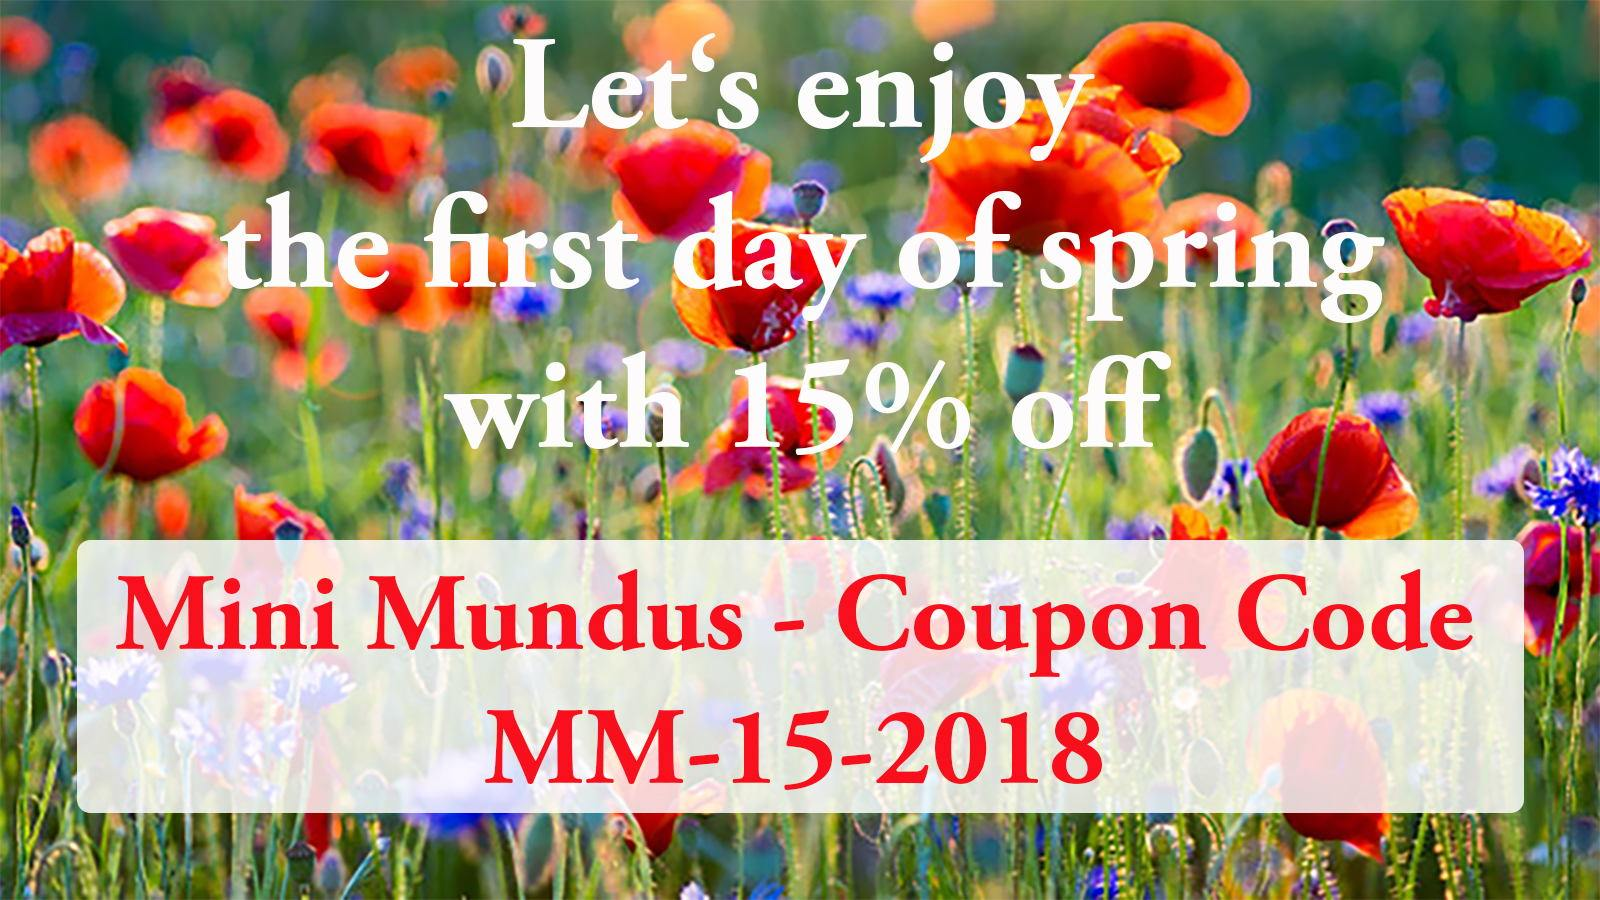 Valid until 25/03/18 on ALL products, except for dolls and gift vouchers!